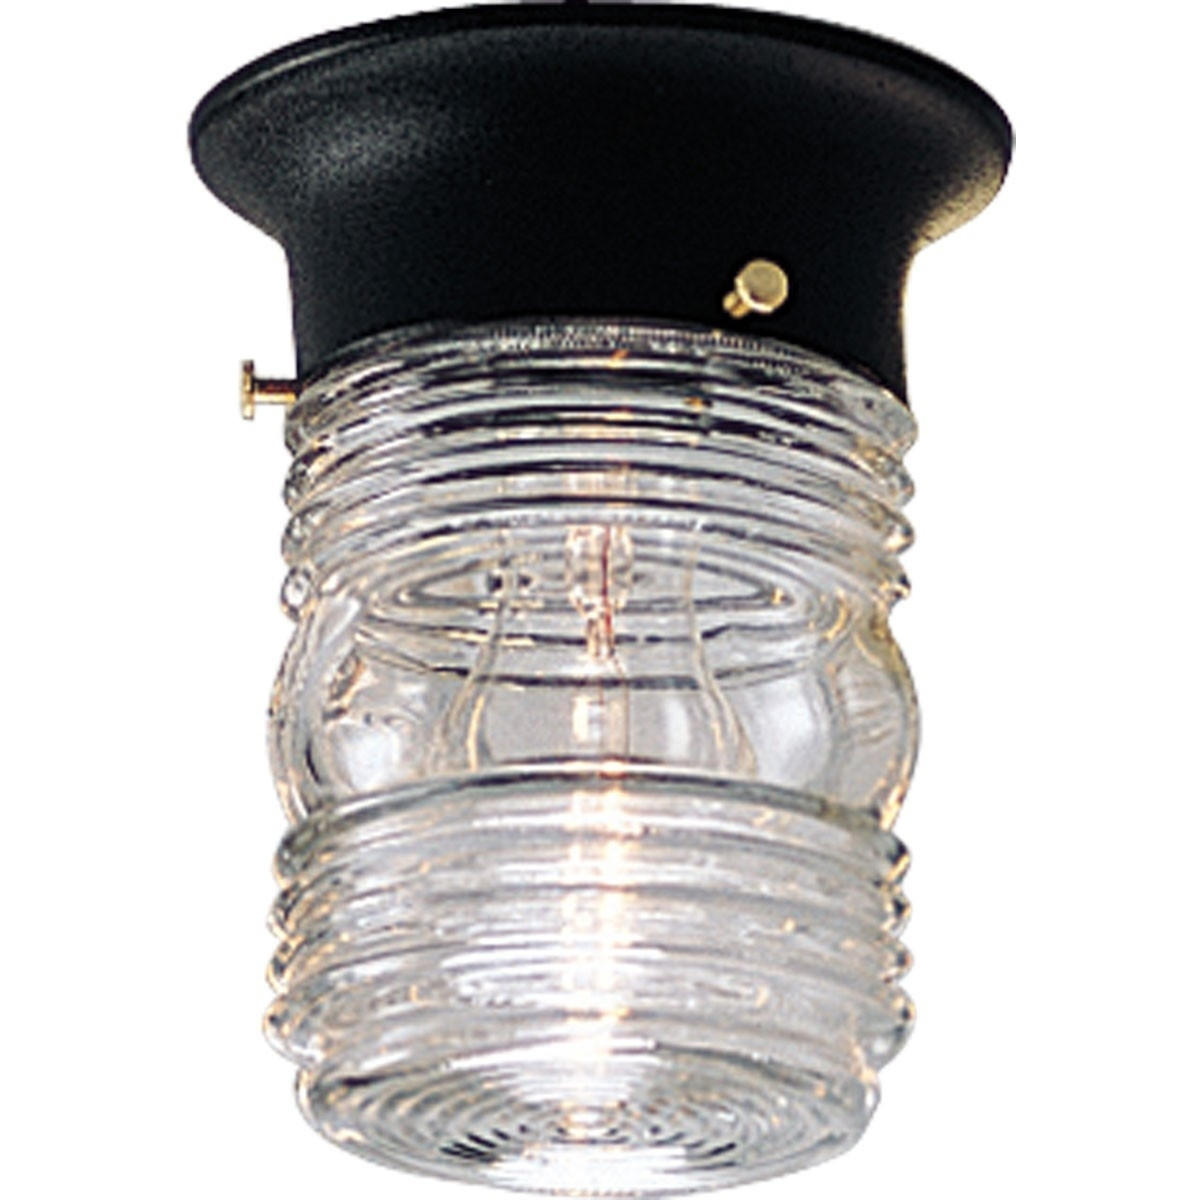 Outdoor Ceiling Flush Mount Light Fixture With Clear Marine Glass Intended For Outdoor Ceiling Lighting Fixtures (#11 of 15)